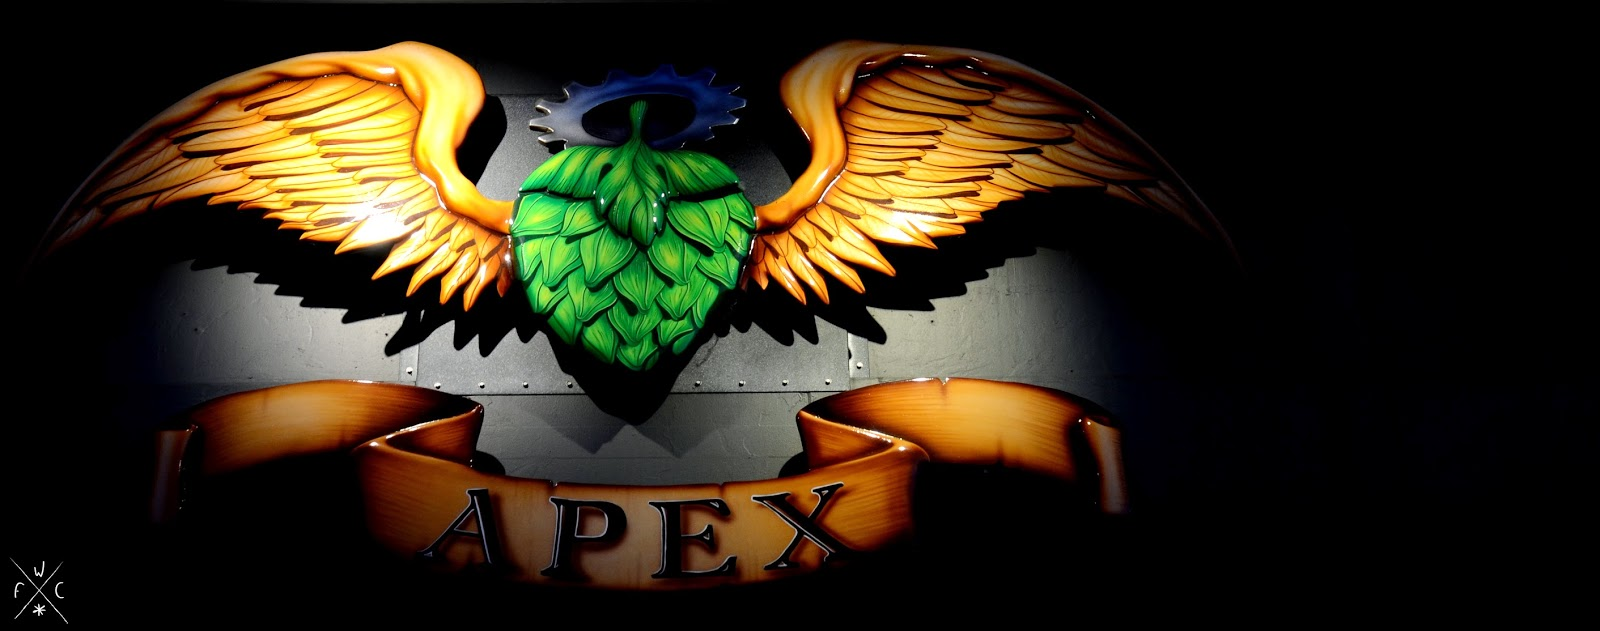 Apex Bar - Portland - USA